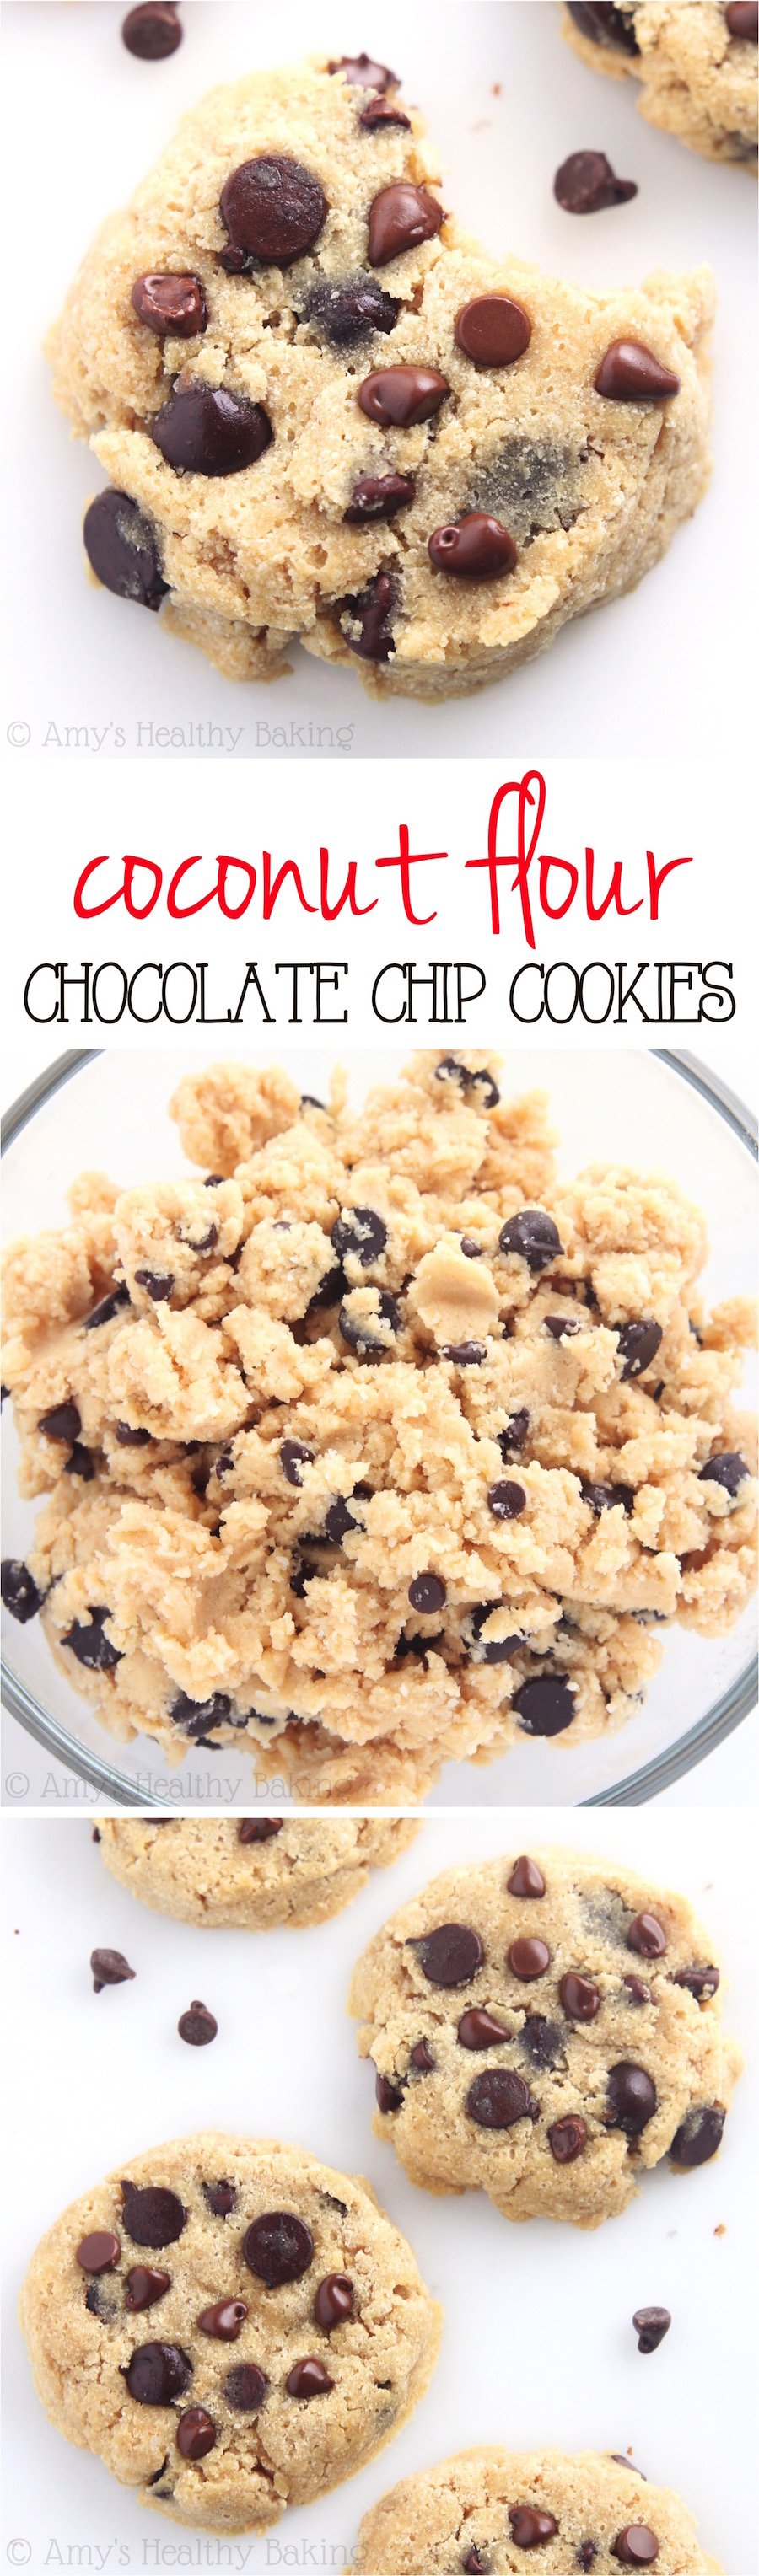 Coconut Flour Chocolate Chip Cookies   Amy's Healthy Baking